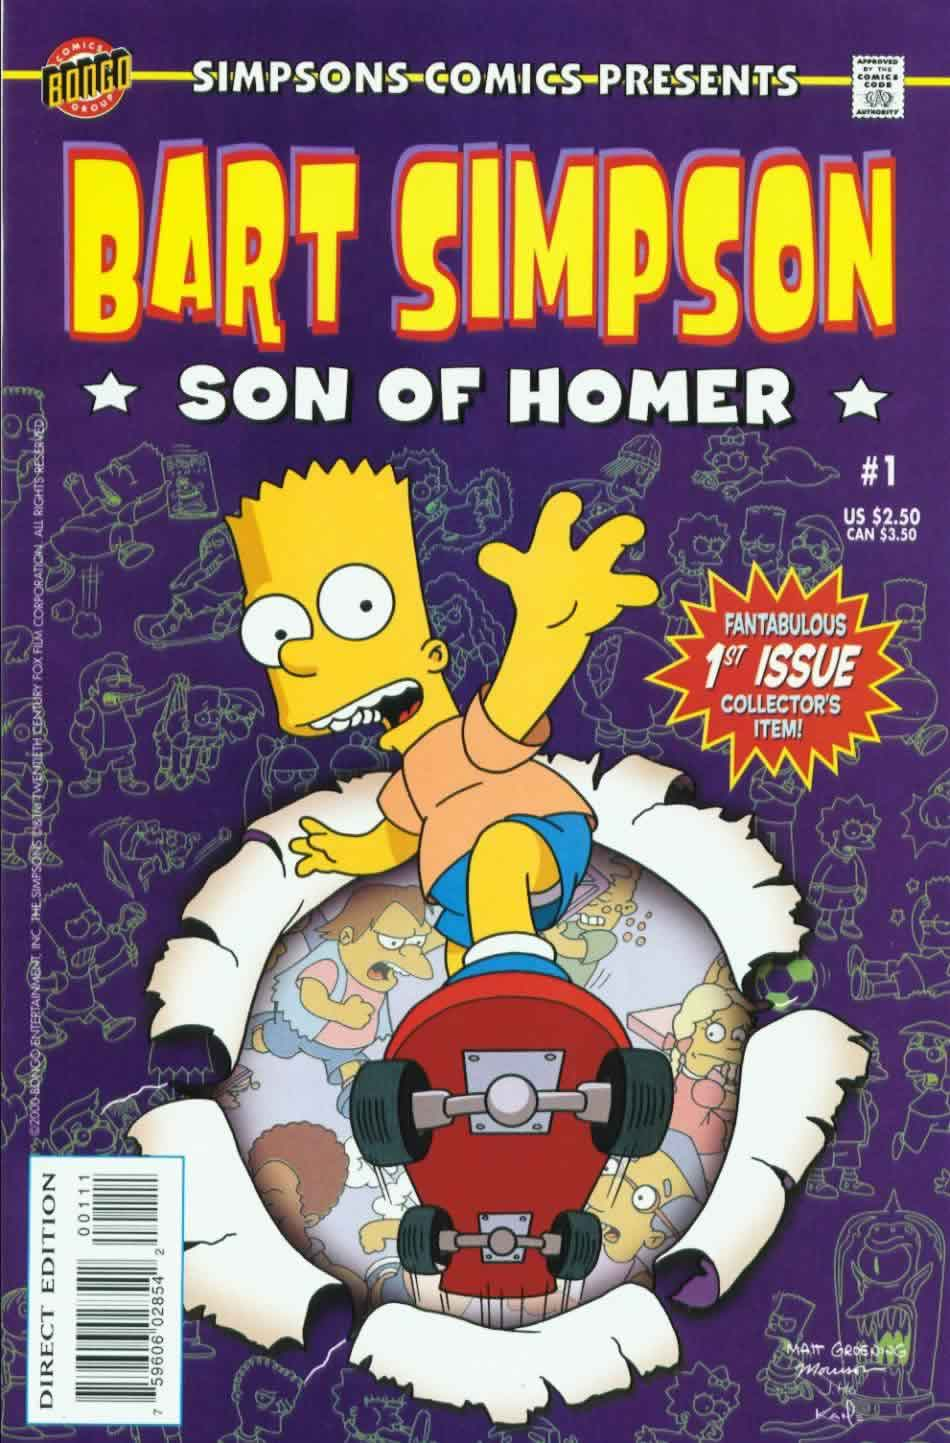 Rule 34 Simpsons http://www.manypicture.com/new/rule34margesimpson/366609.htm